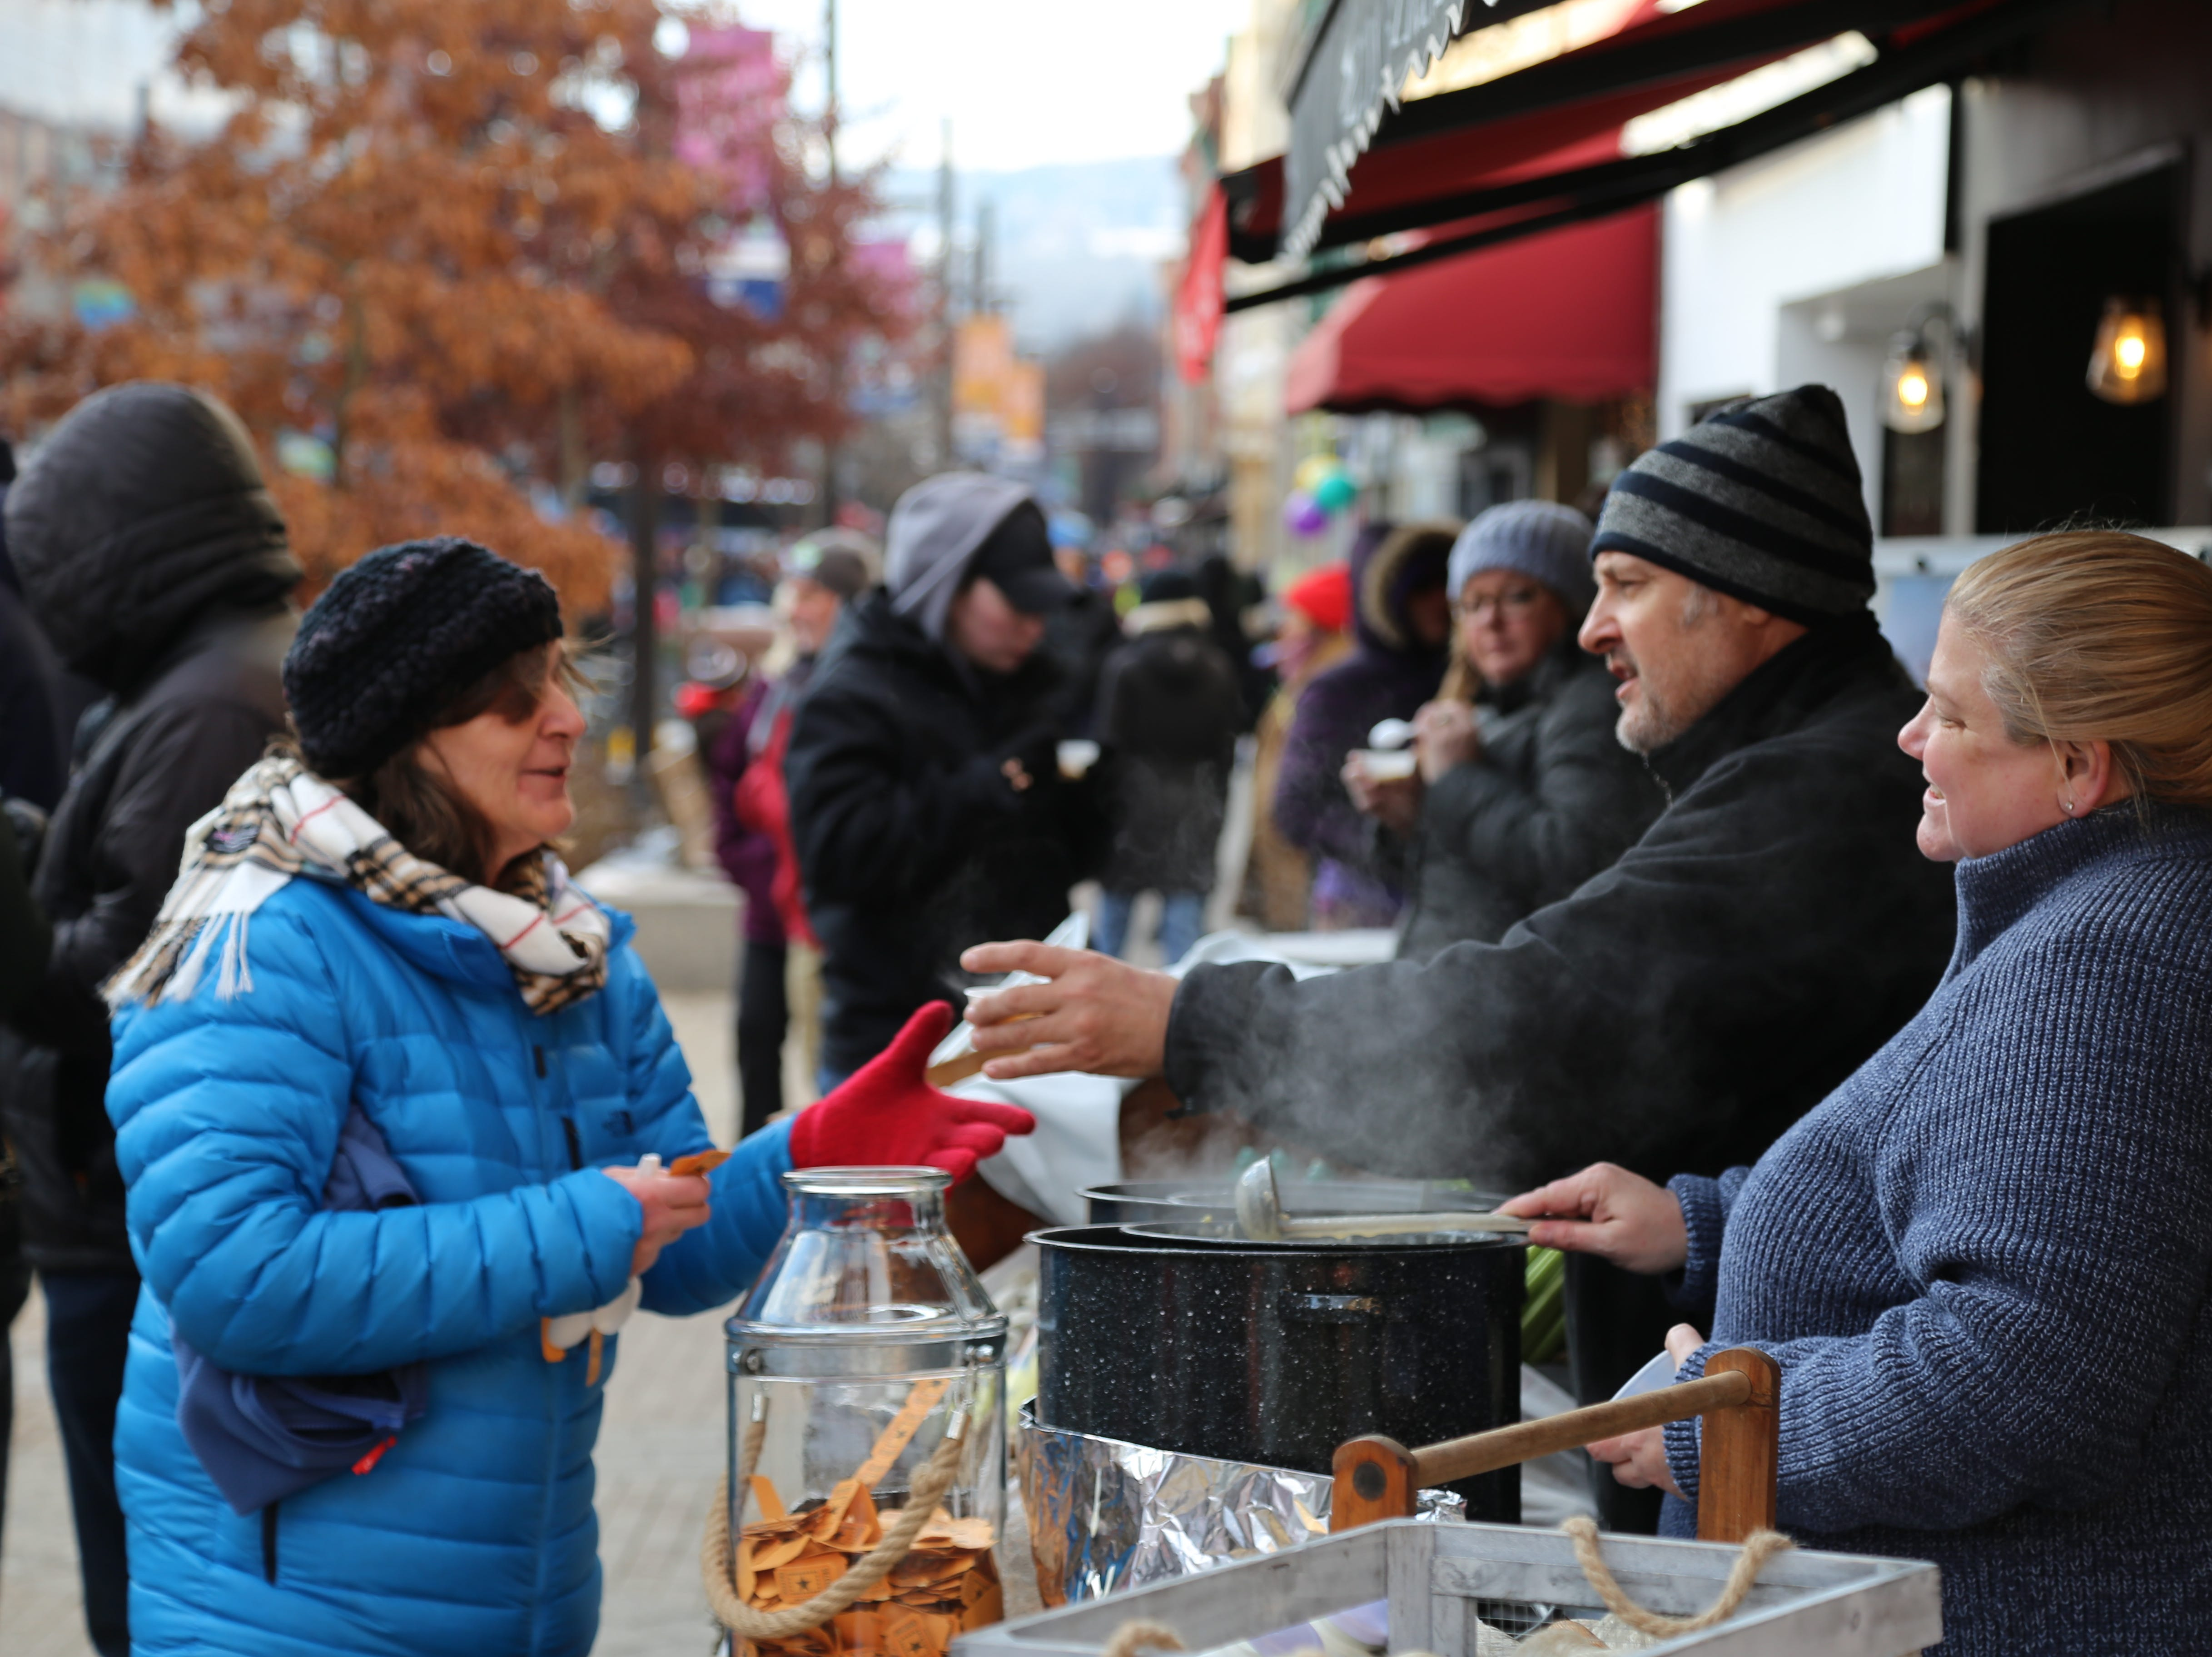 Residents ate chowder as they watched ice sculptors carving ice during the 12th annual Ithaca Ice Fest.